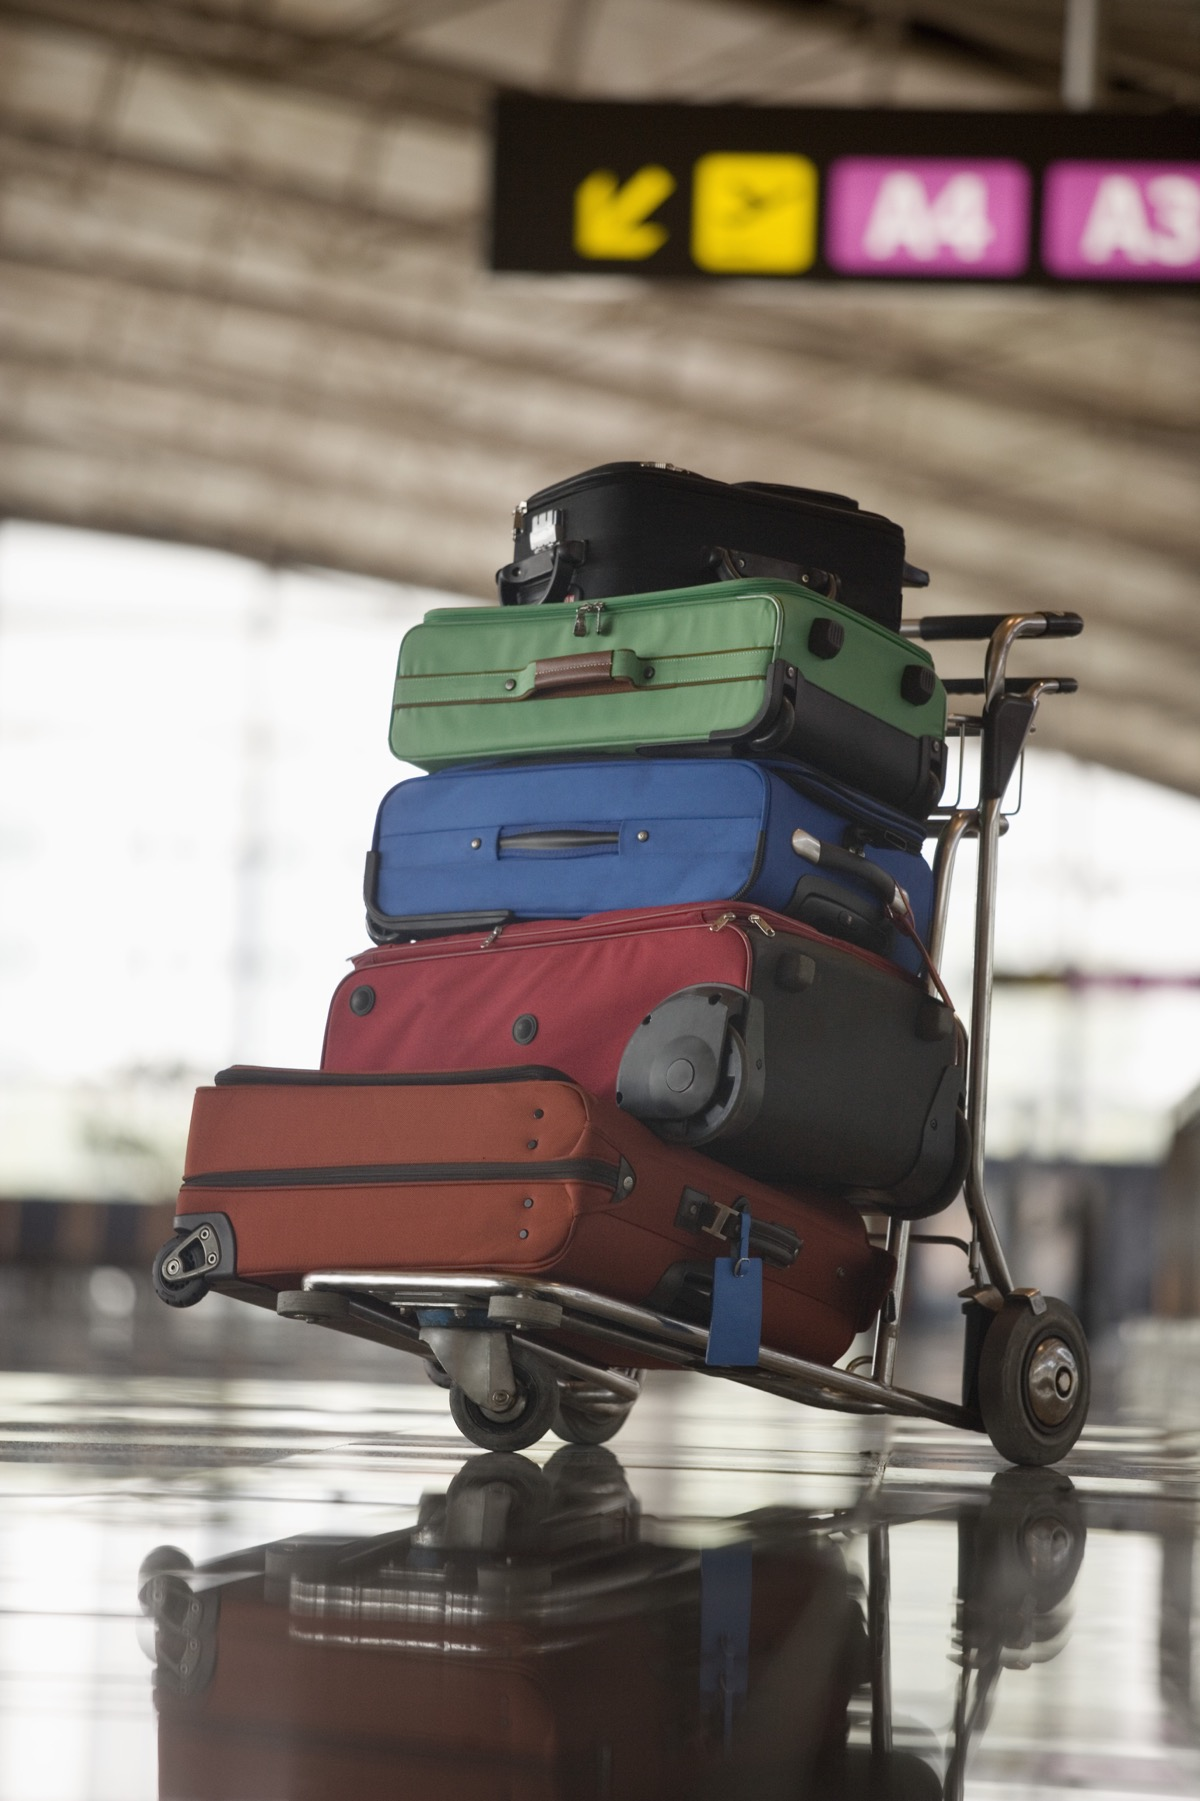 Students can fly to Europe or UK for only $1,211++ with 46kg check-in baggage, thanks to British Airways! - Alvinology